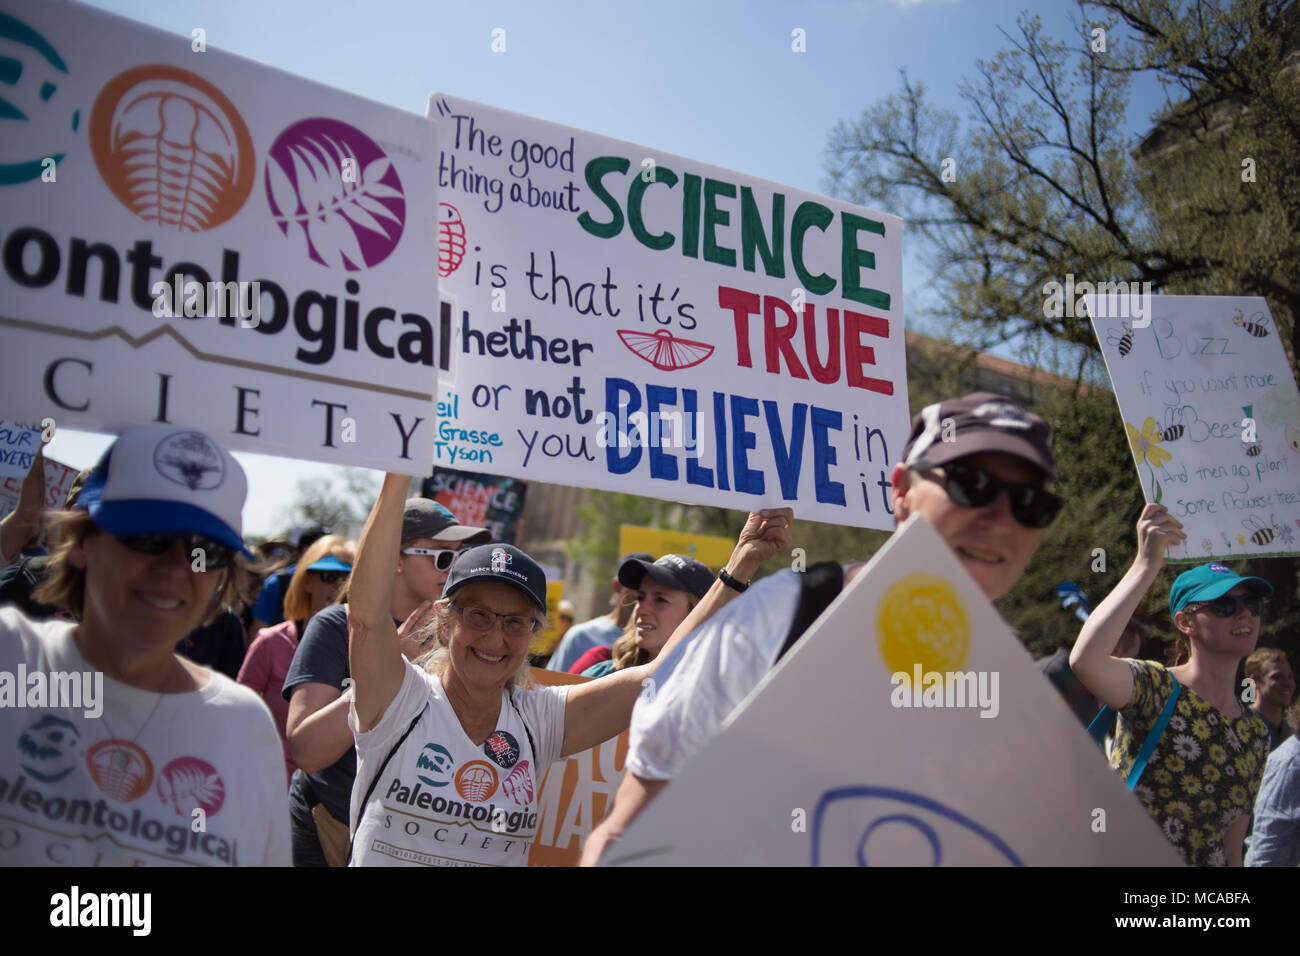 Washington DC, USA 14th April 2018 Protestors walk with signs and banners along Constitution Avenue during the March For Science, a rally sponsored by the nonprofit Nature Conservancy. Credit: Michael Candelori/Alamy Live News Stock Photo